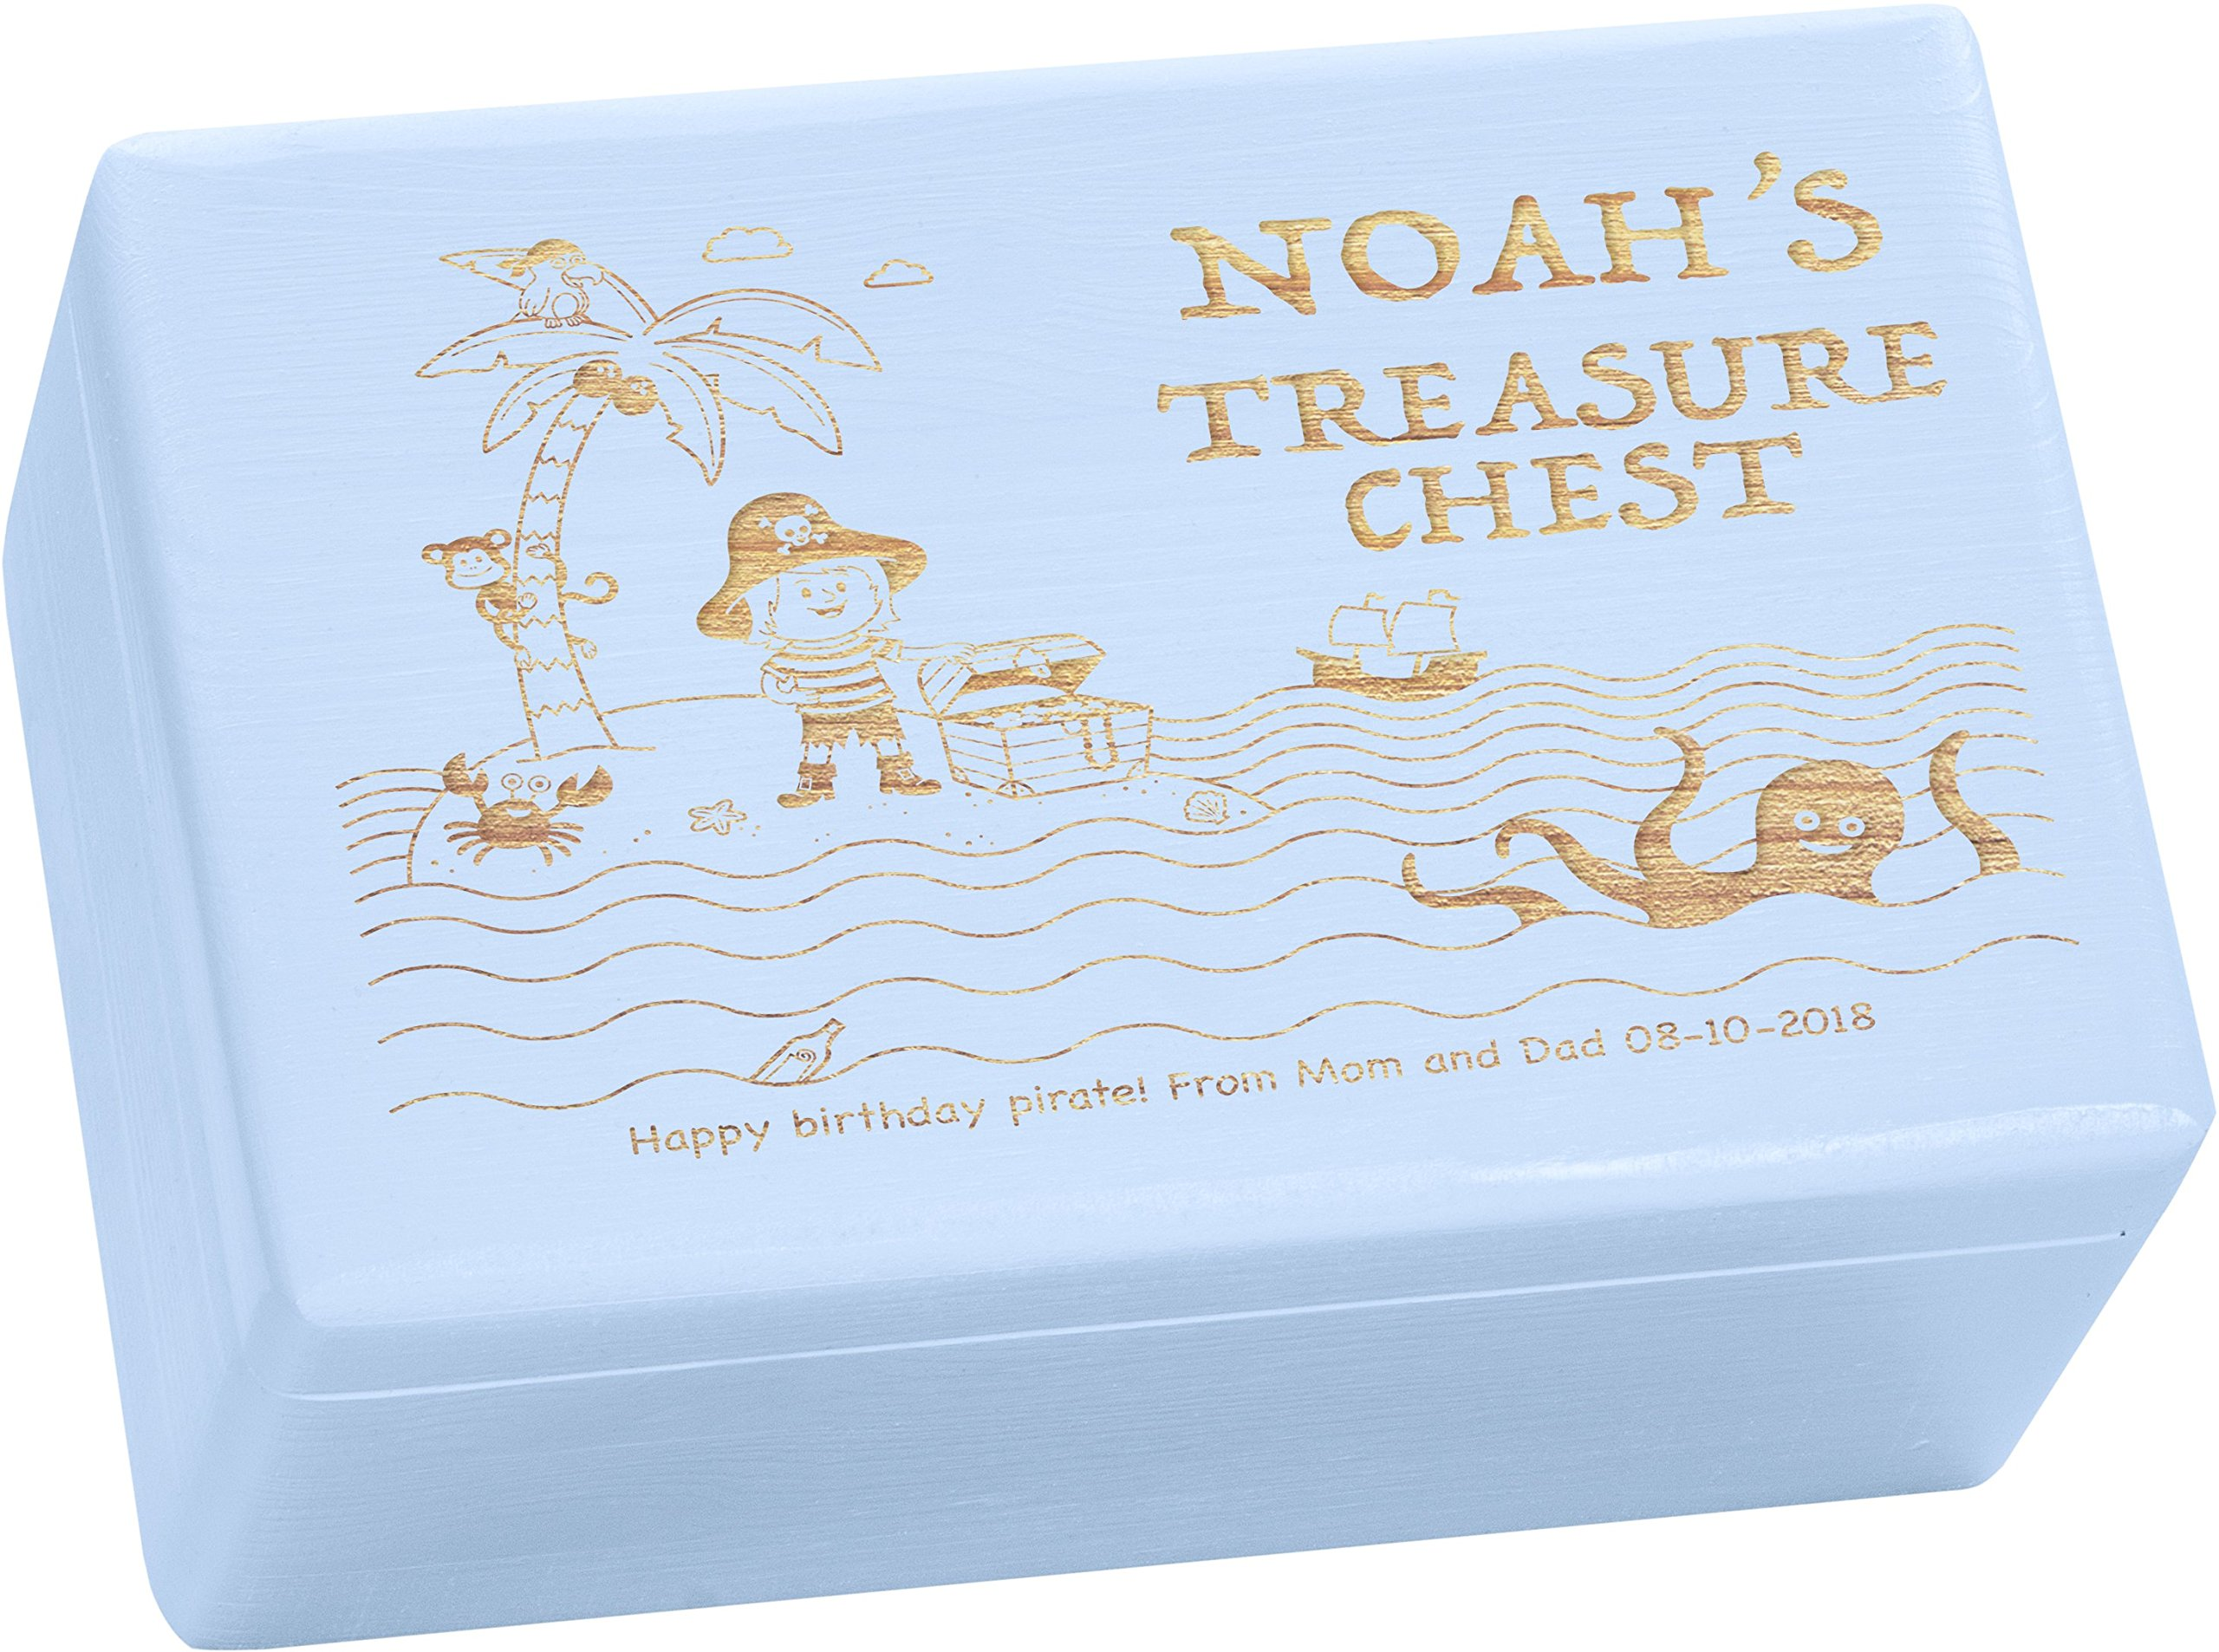 LAUBLUST Engraved Wooden Gift Box - Size L, 12x8x6in - PERSONALIZED Treasure Chest - Pirate Design | Painted Blue - Made in Germany